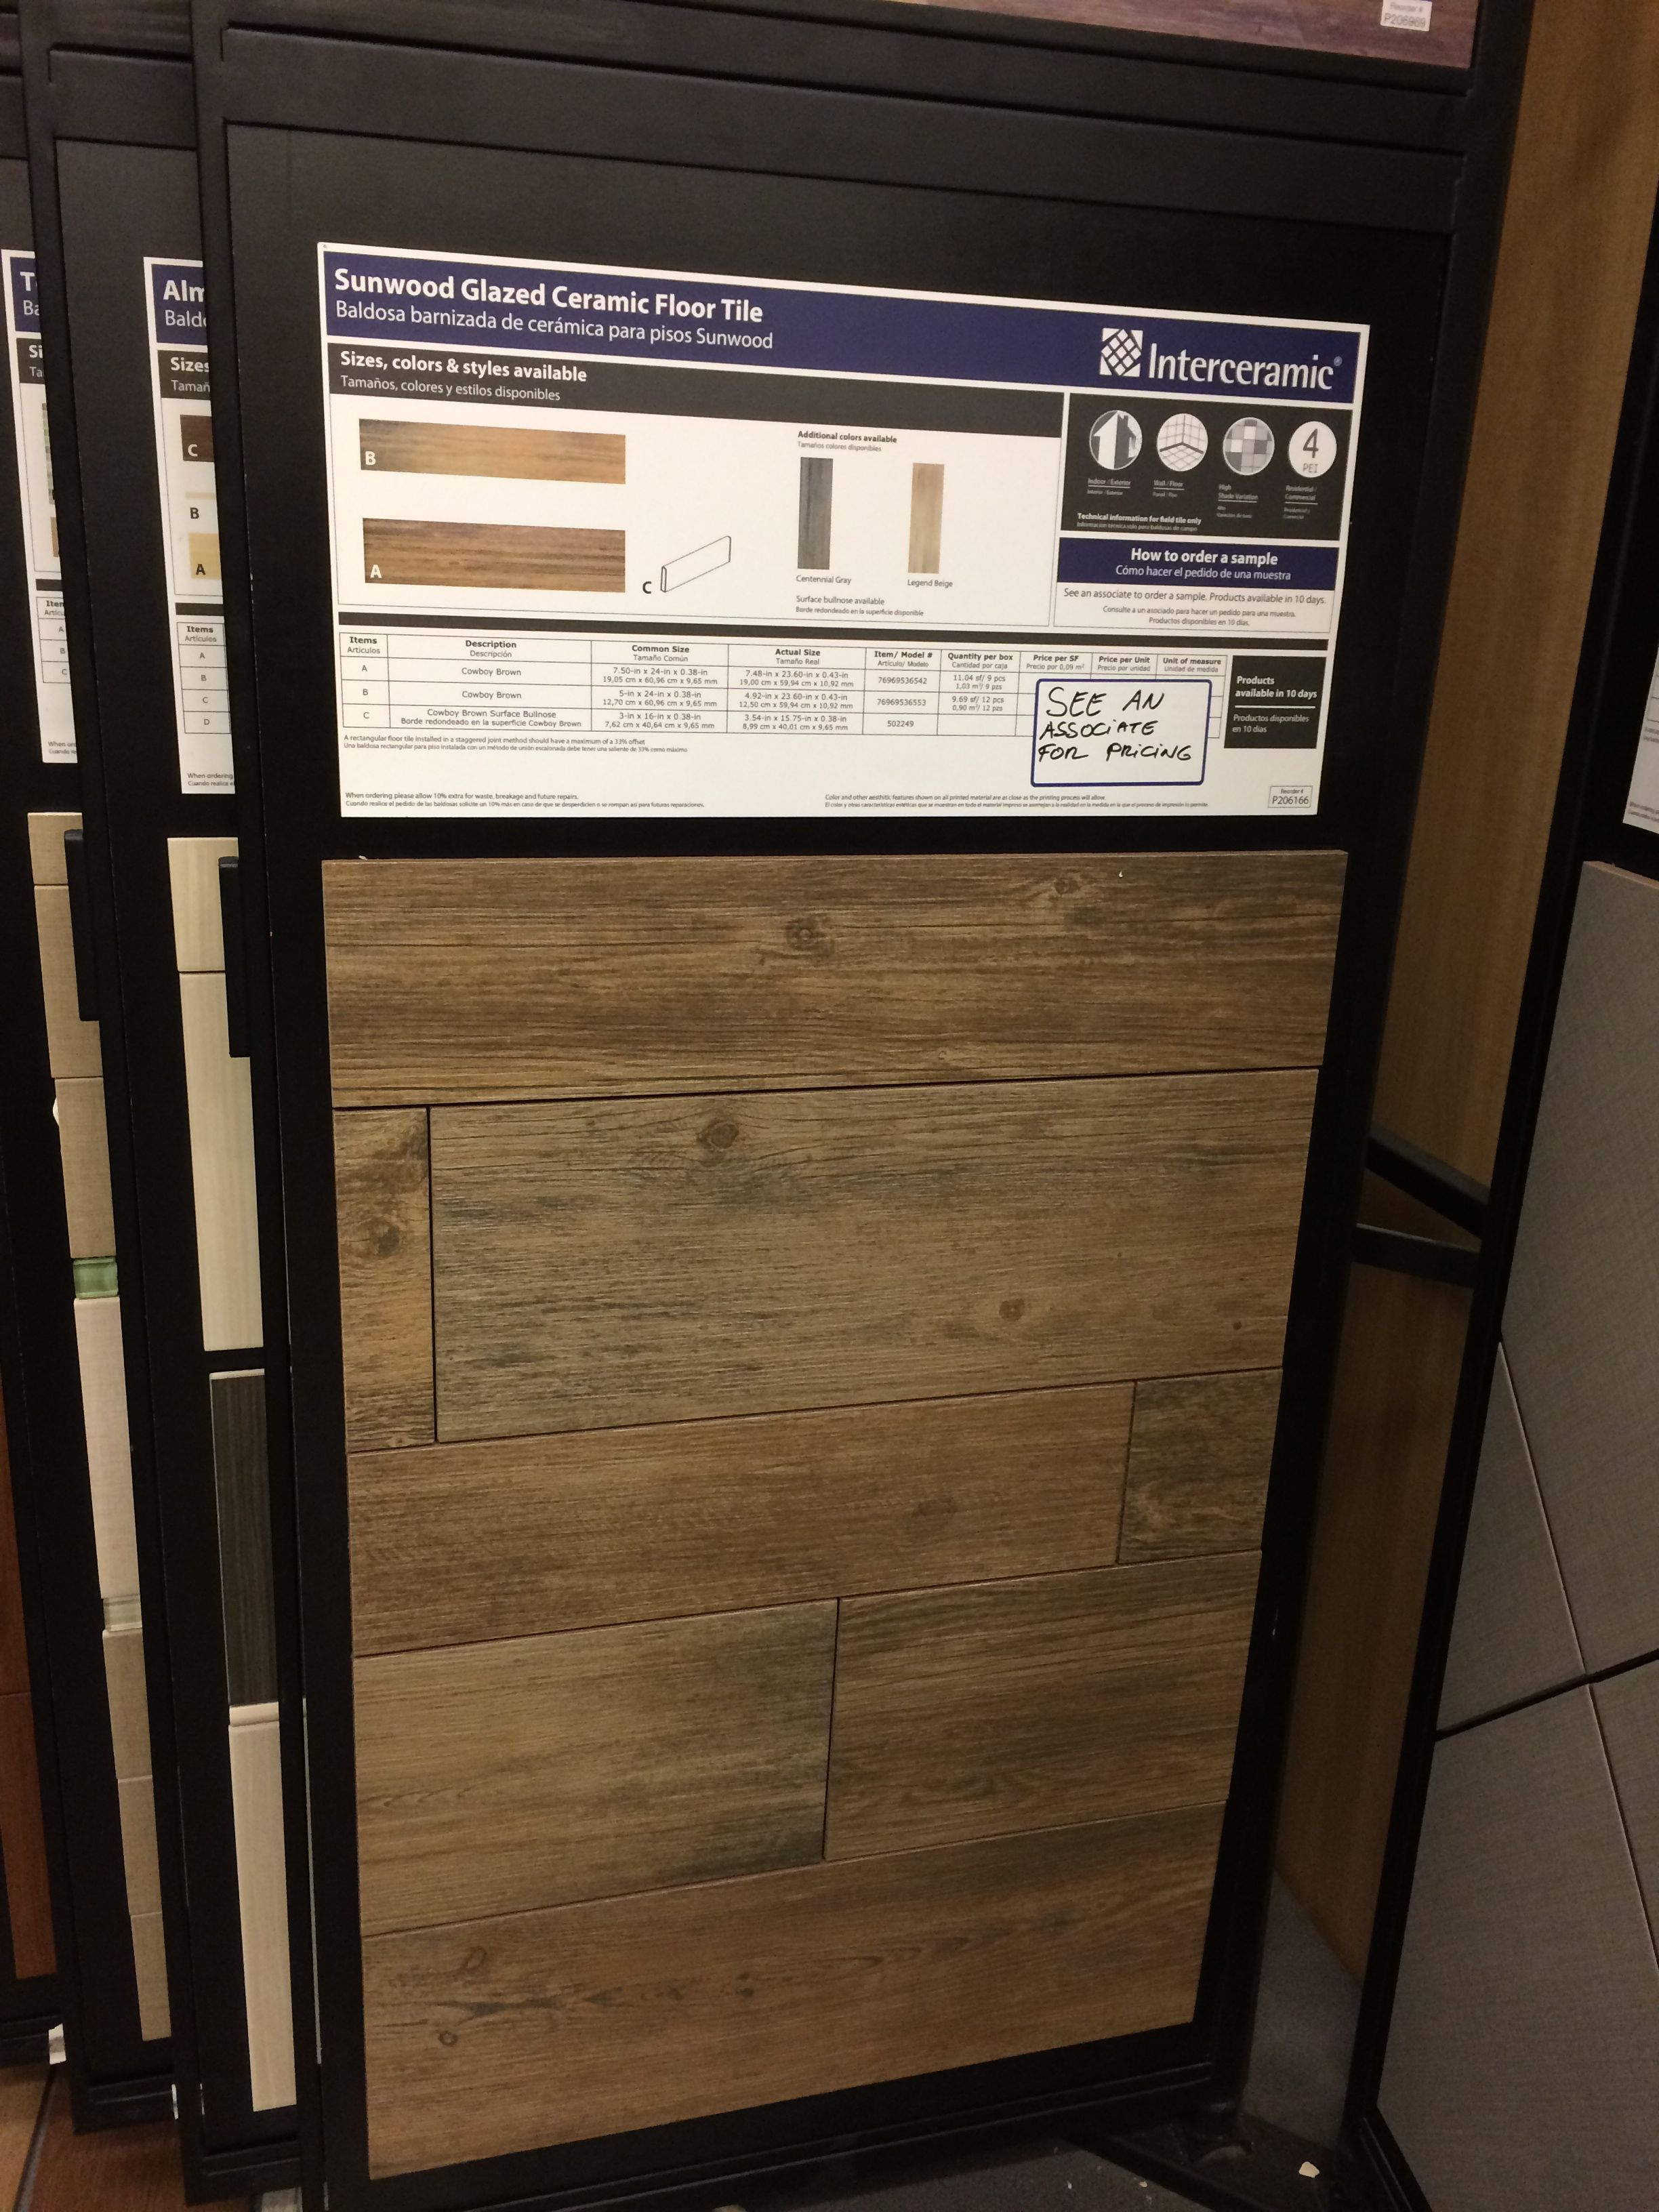 wood grain ceramic tile at lowes